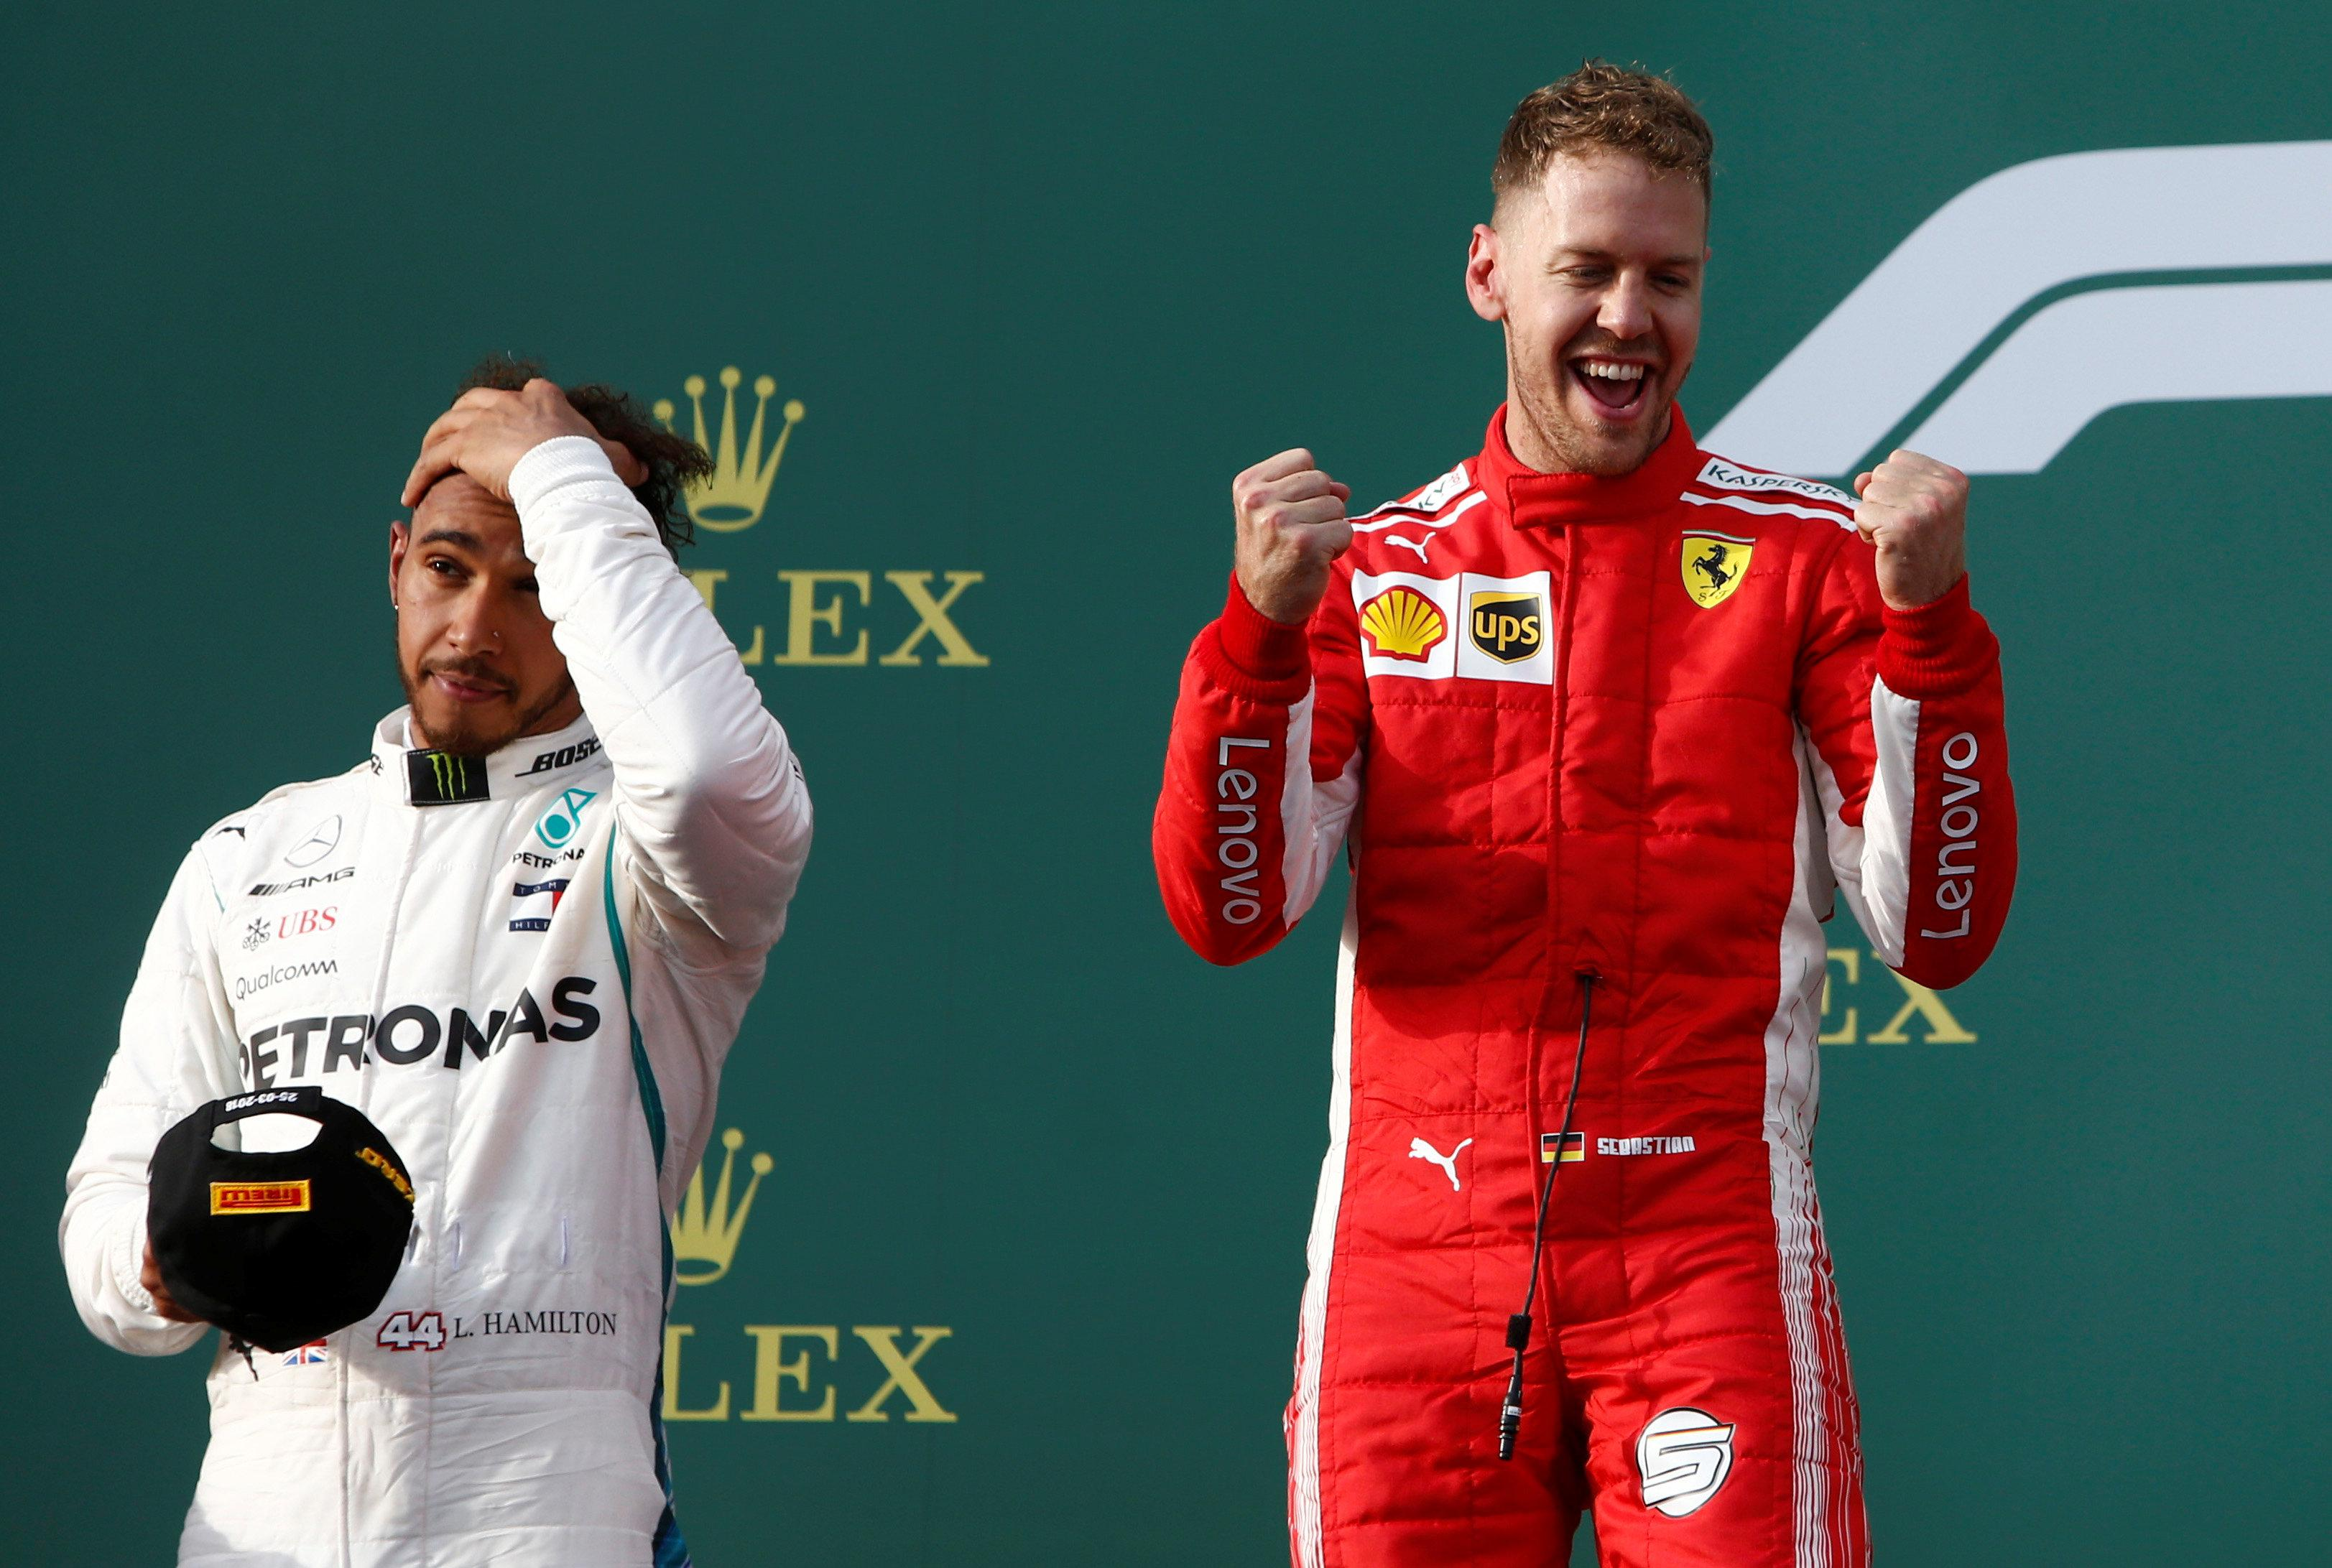 Sebastian Vettel steals the victory in Australia ahead of Lewis Hamilton